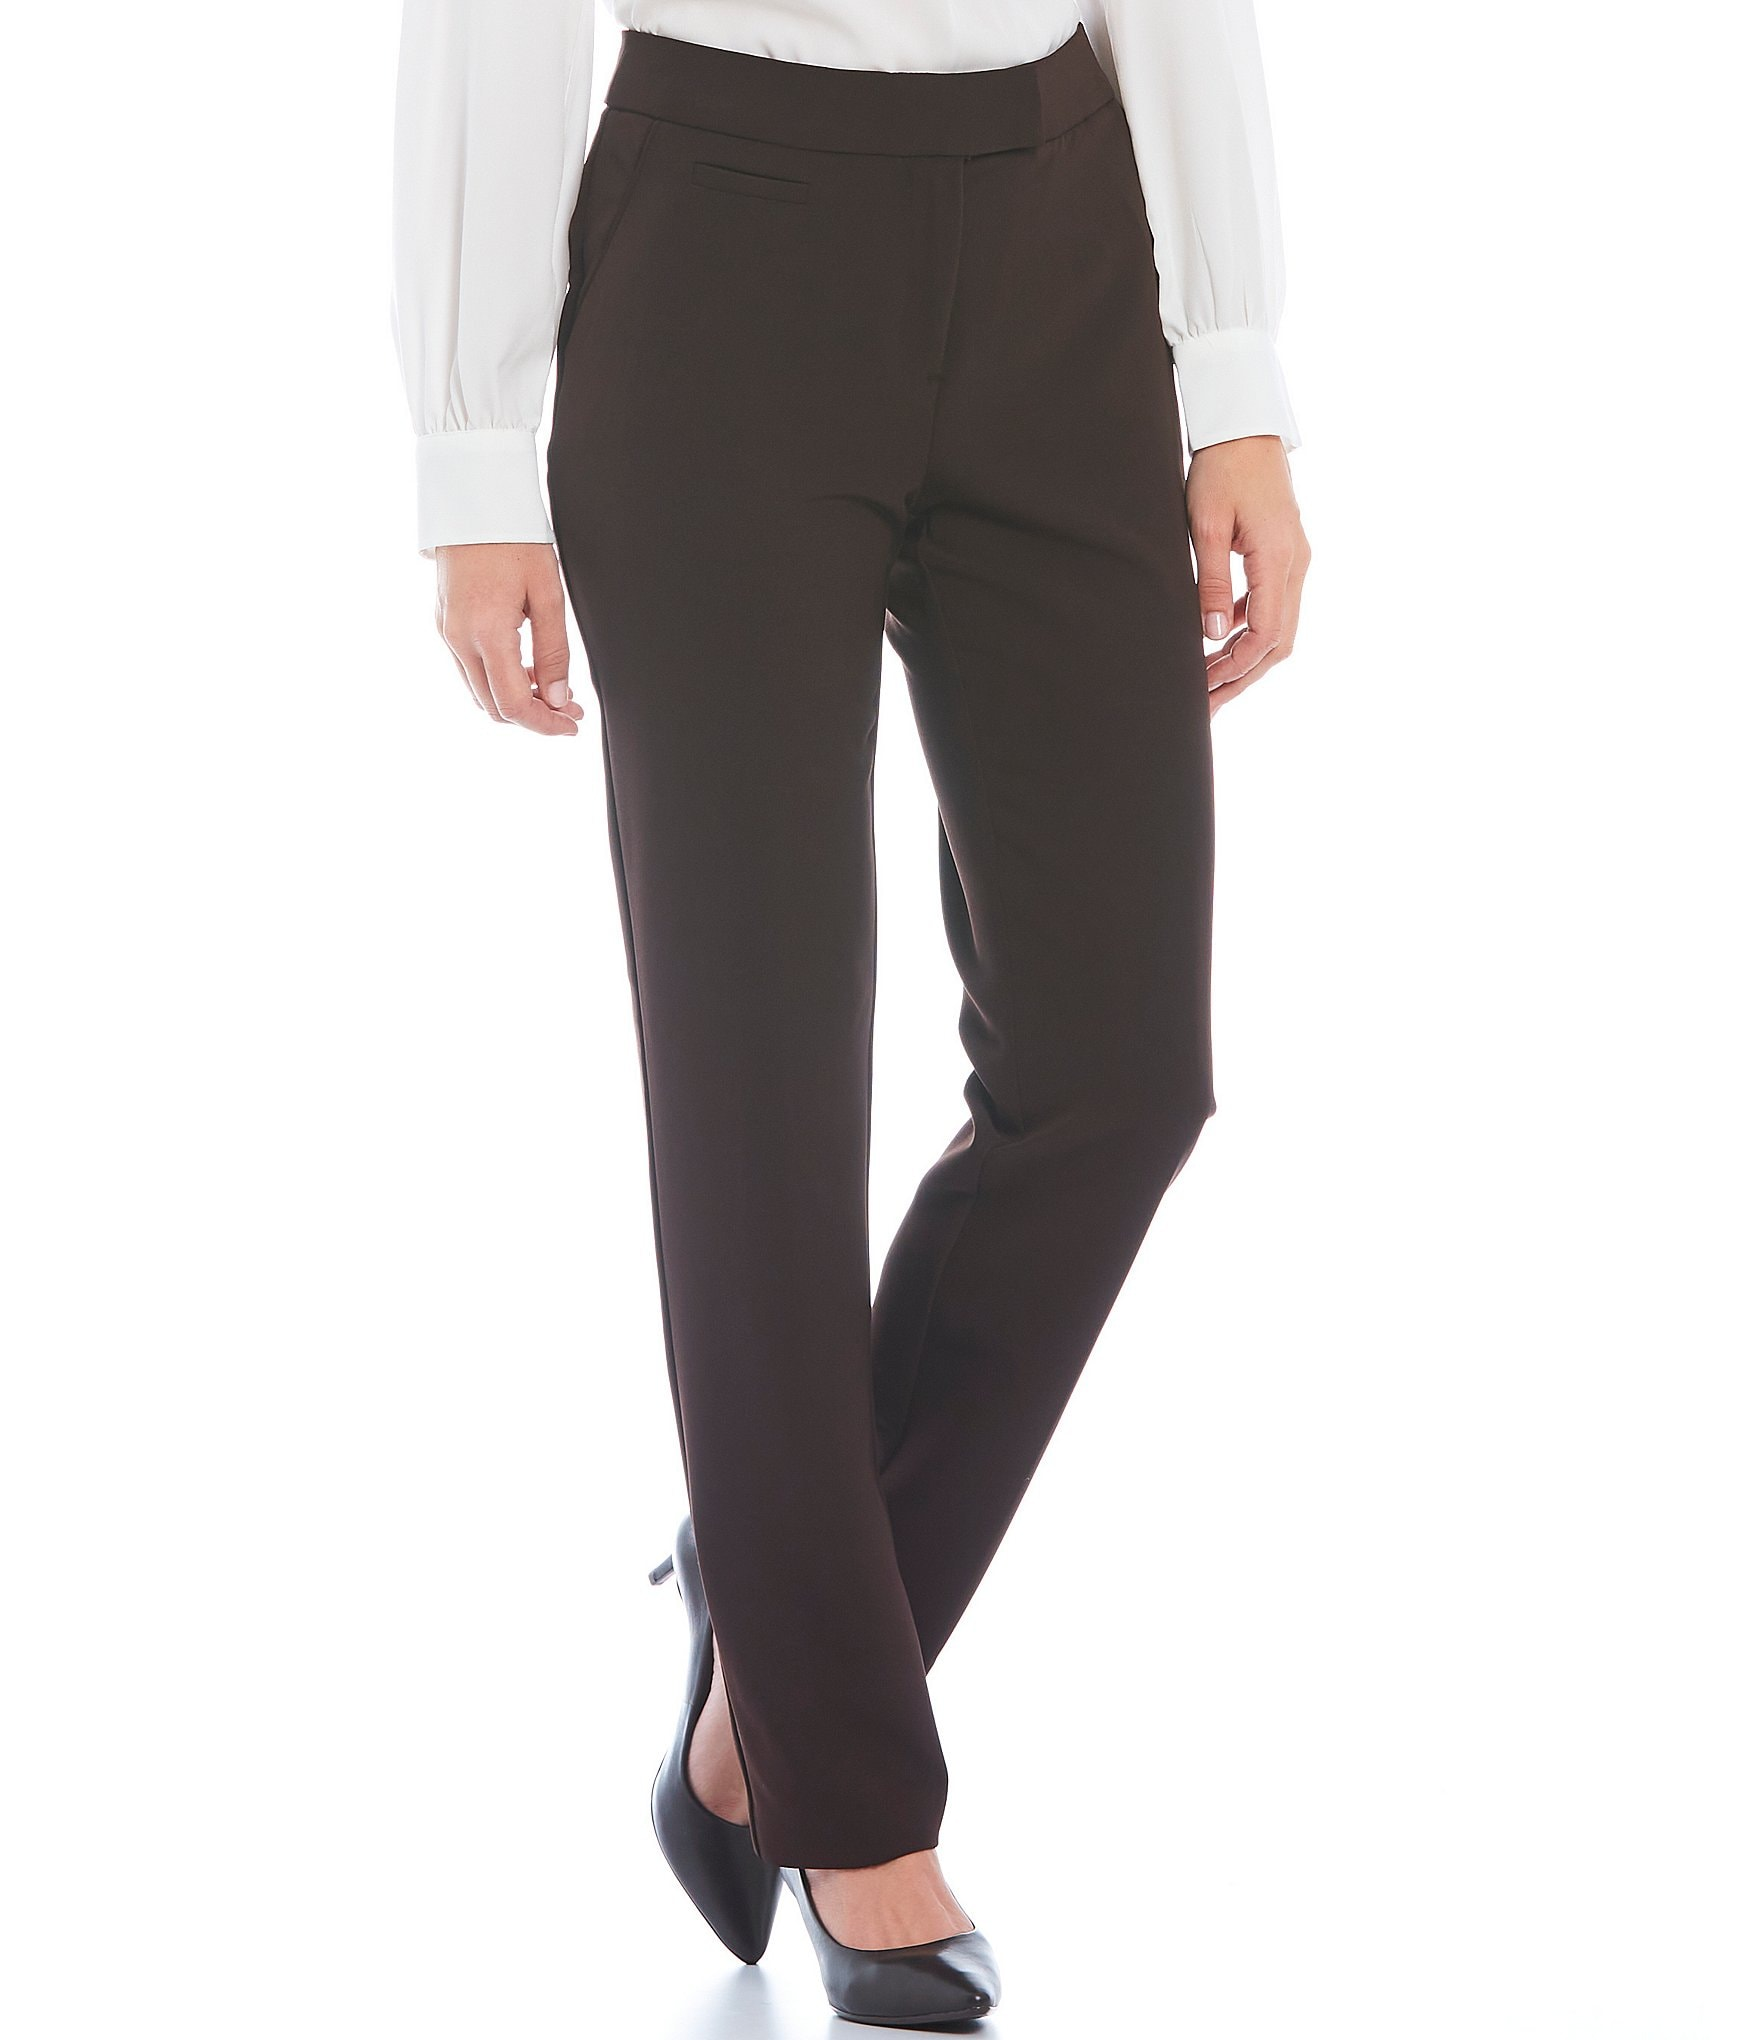 b2c306269 Brown Women's Casual & Dress Pants | Dillard's